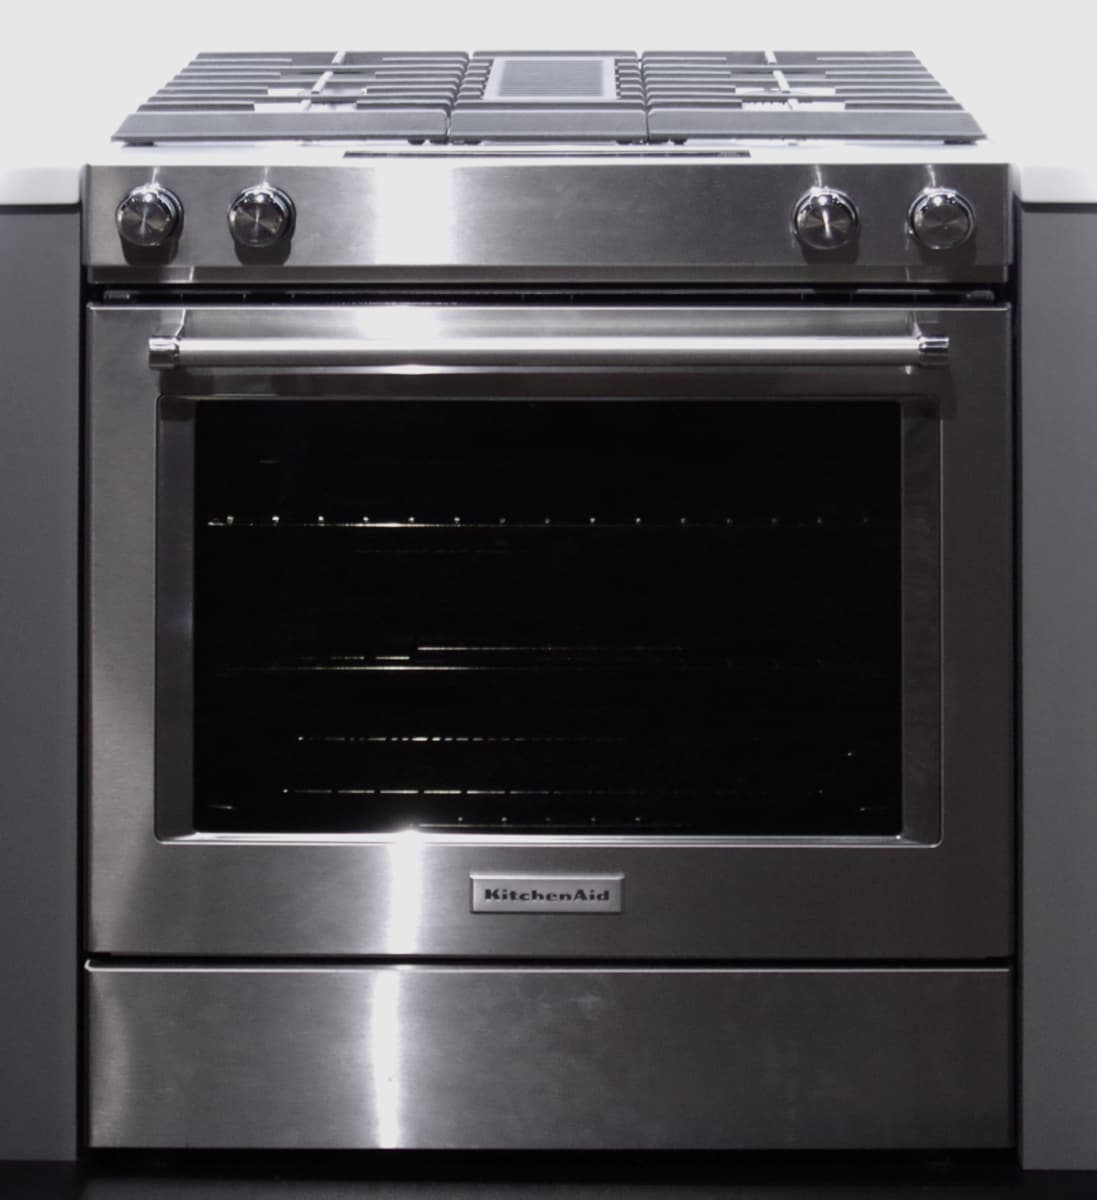 The kitchenaid ksdg950ess downdraft range features built in ventilation between the two rows of burners